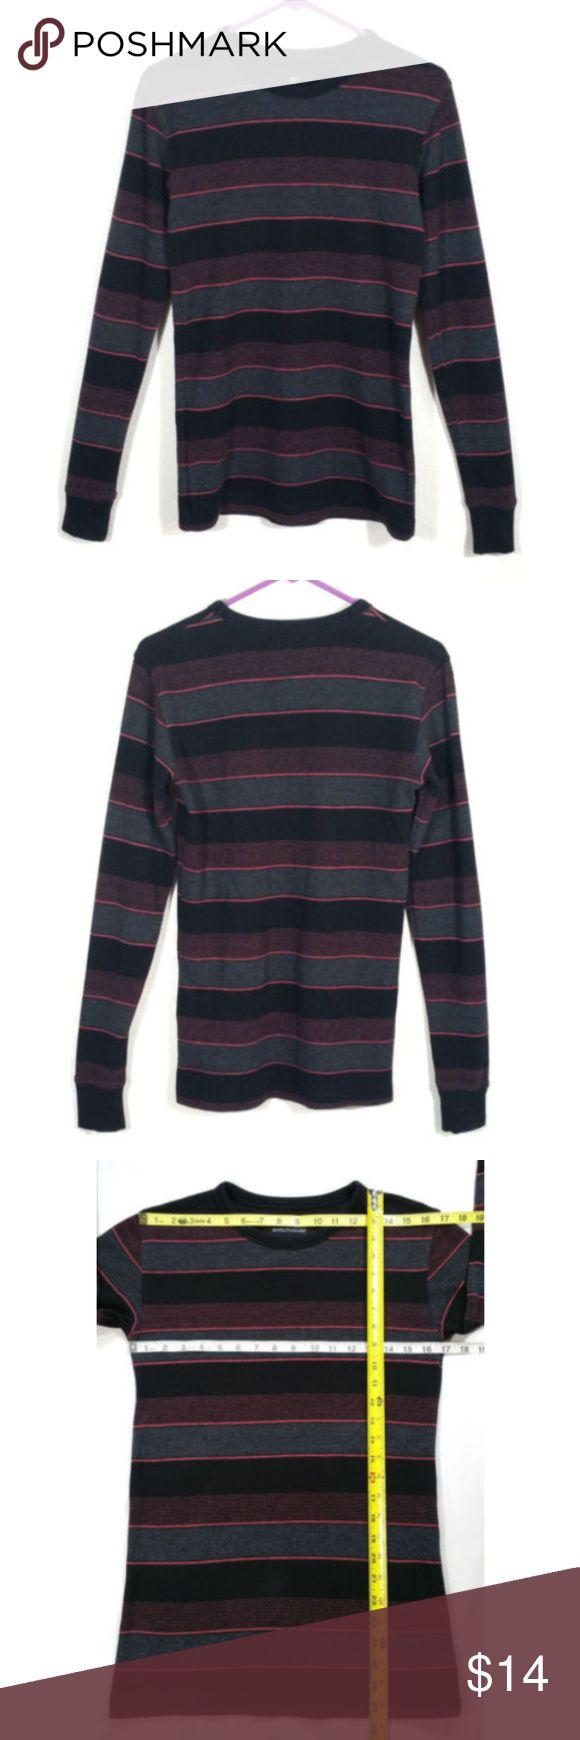 """Shouthouse Men Waffle Knit Thermal Shirt 0840E2 Shouthouse Men Waffle Knit Thermal Shirt  Gently used, no holes or tears.  Minor signs of washing.  Striped pattern with Black, Gray, and a shade Pink closest to """"Punch"""" (see color chart).  Size Small S Approx. measurements laying flat Shoulder to shoulder: 16.5"""" Pit to pit: 17"""" Length: 27.5"""" Sleeve length: 26.75""""  SKU 0840/9/CLE2 Shouthouse Shirts Tees - Long Sleeve"""